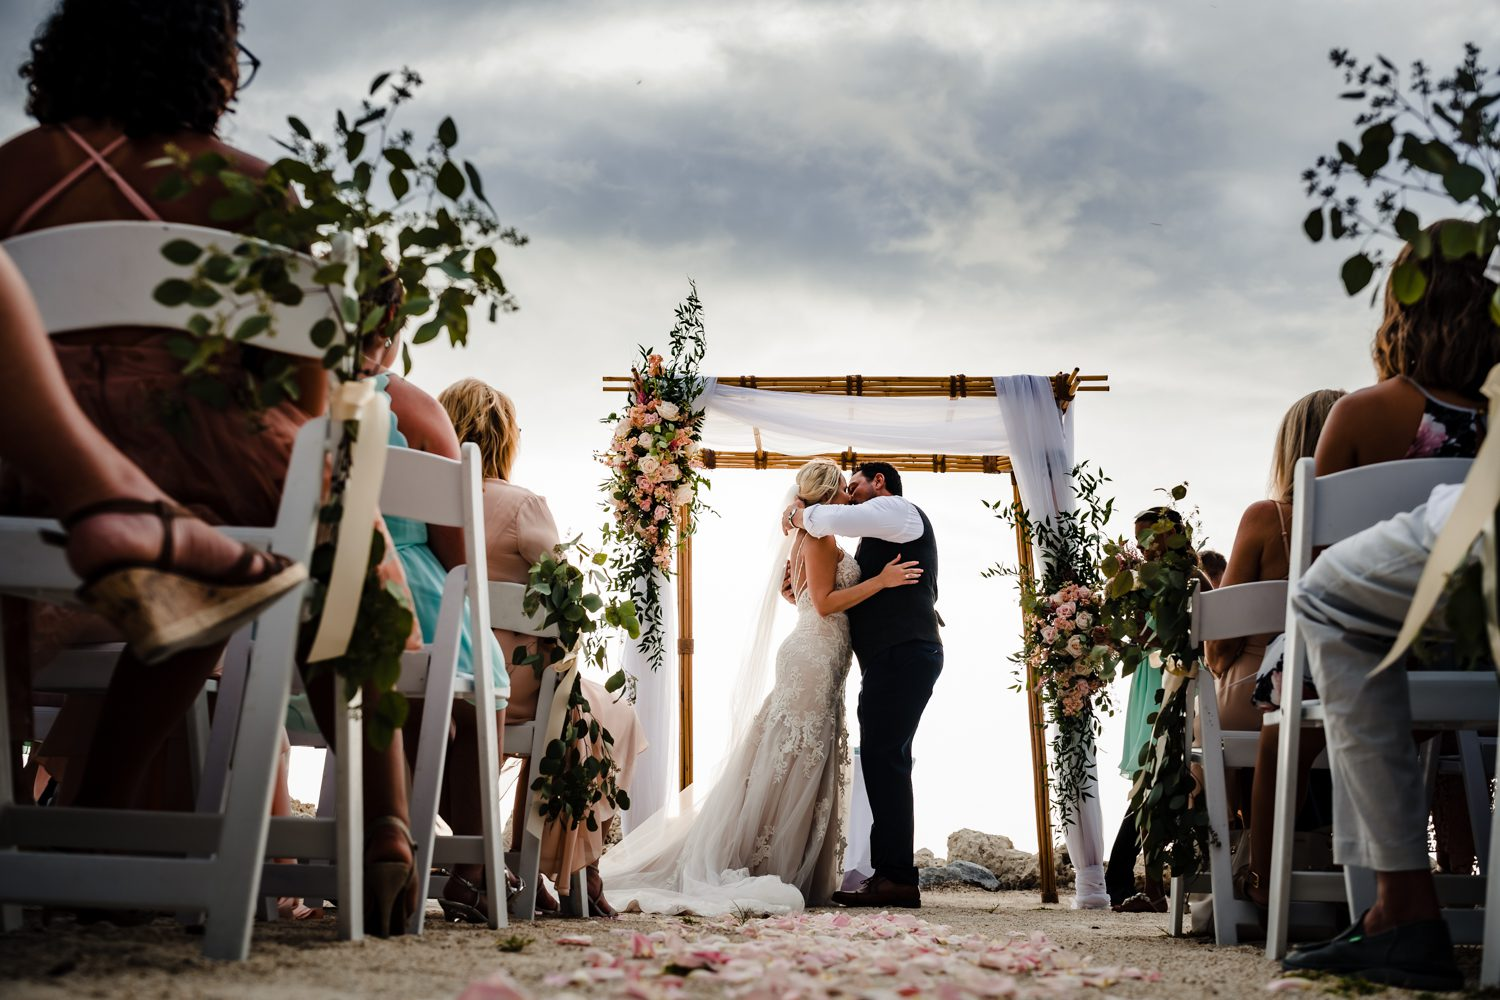 Bride and groom kissing after wedding vows at fort zachary taylor